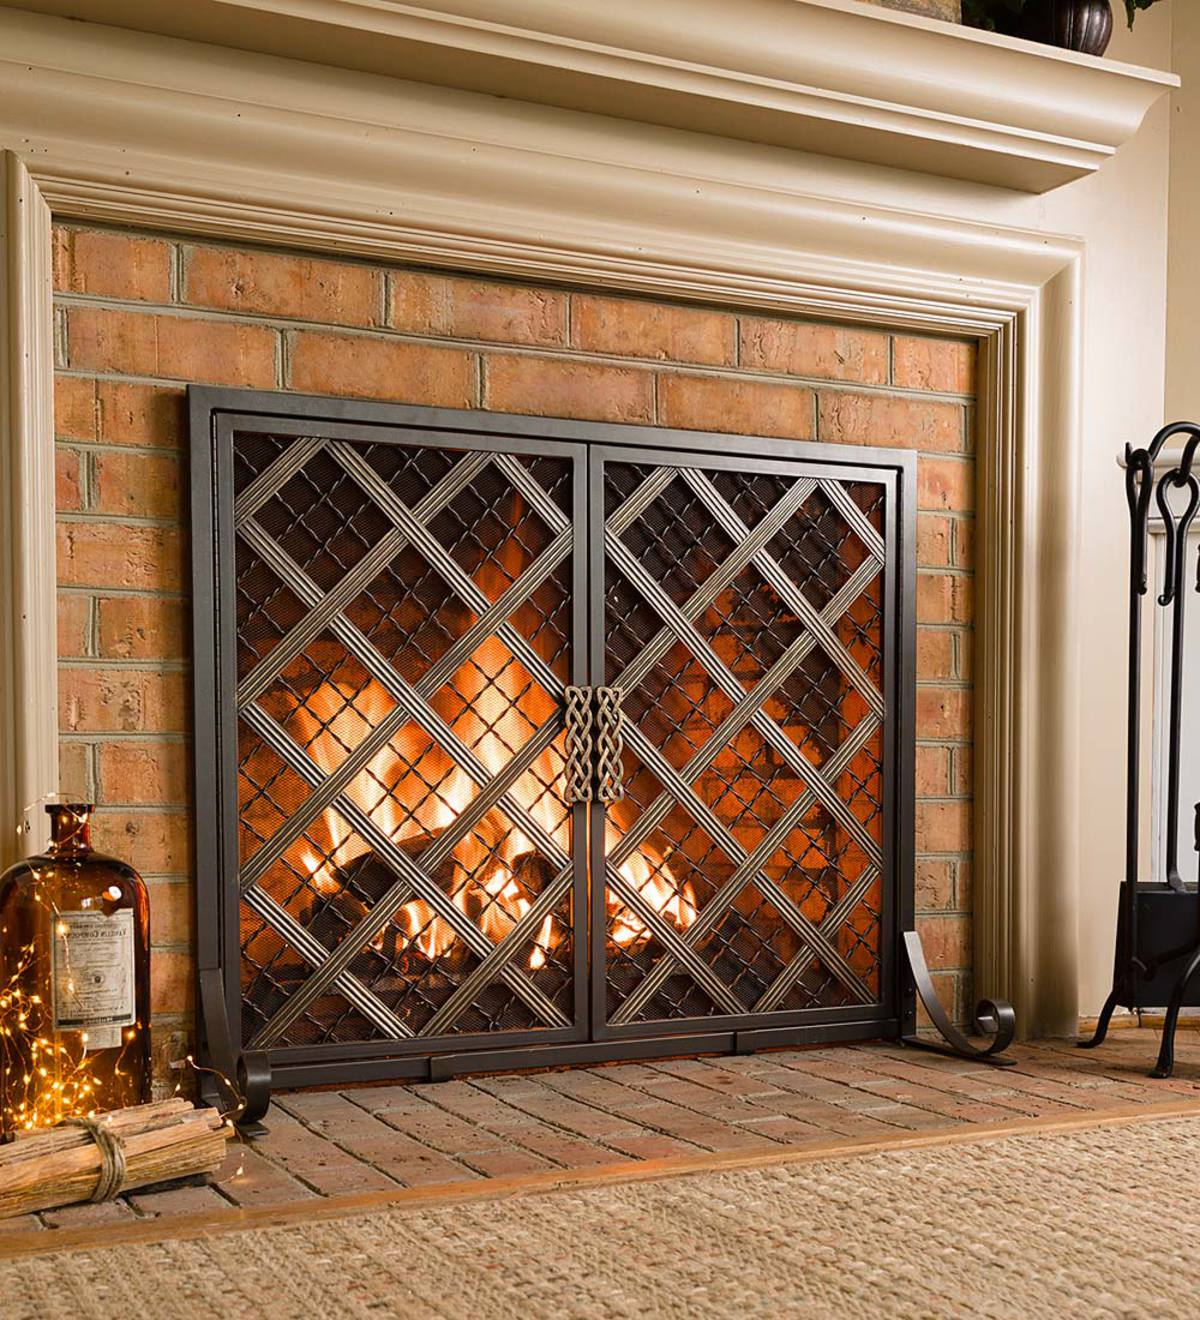 McCormick Celtic Fireplace Screen, Large